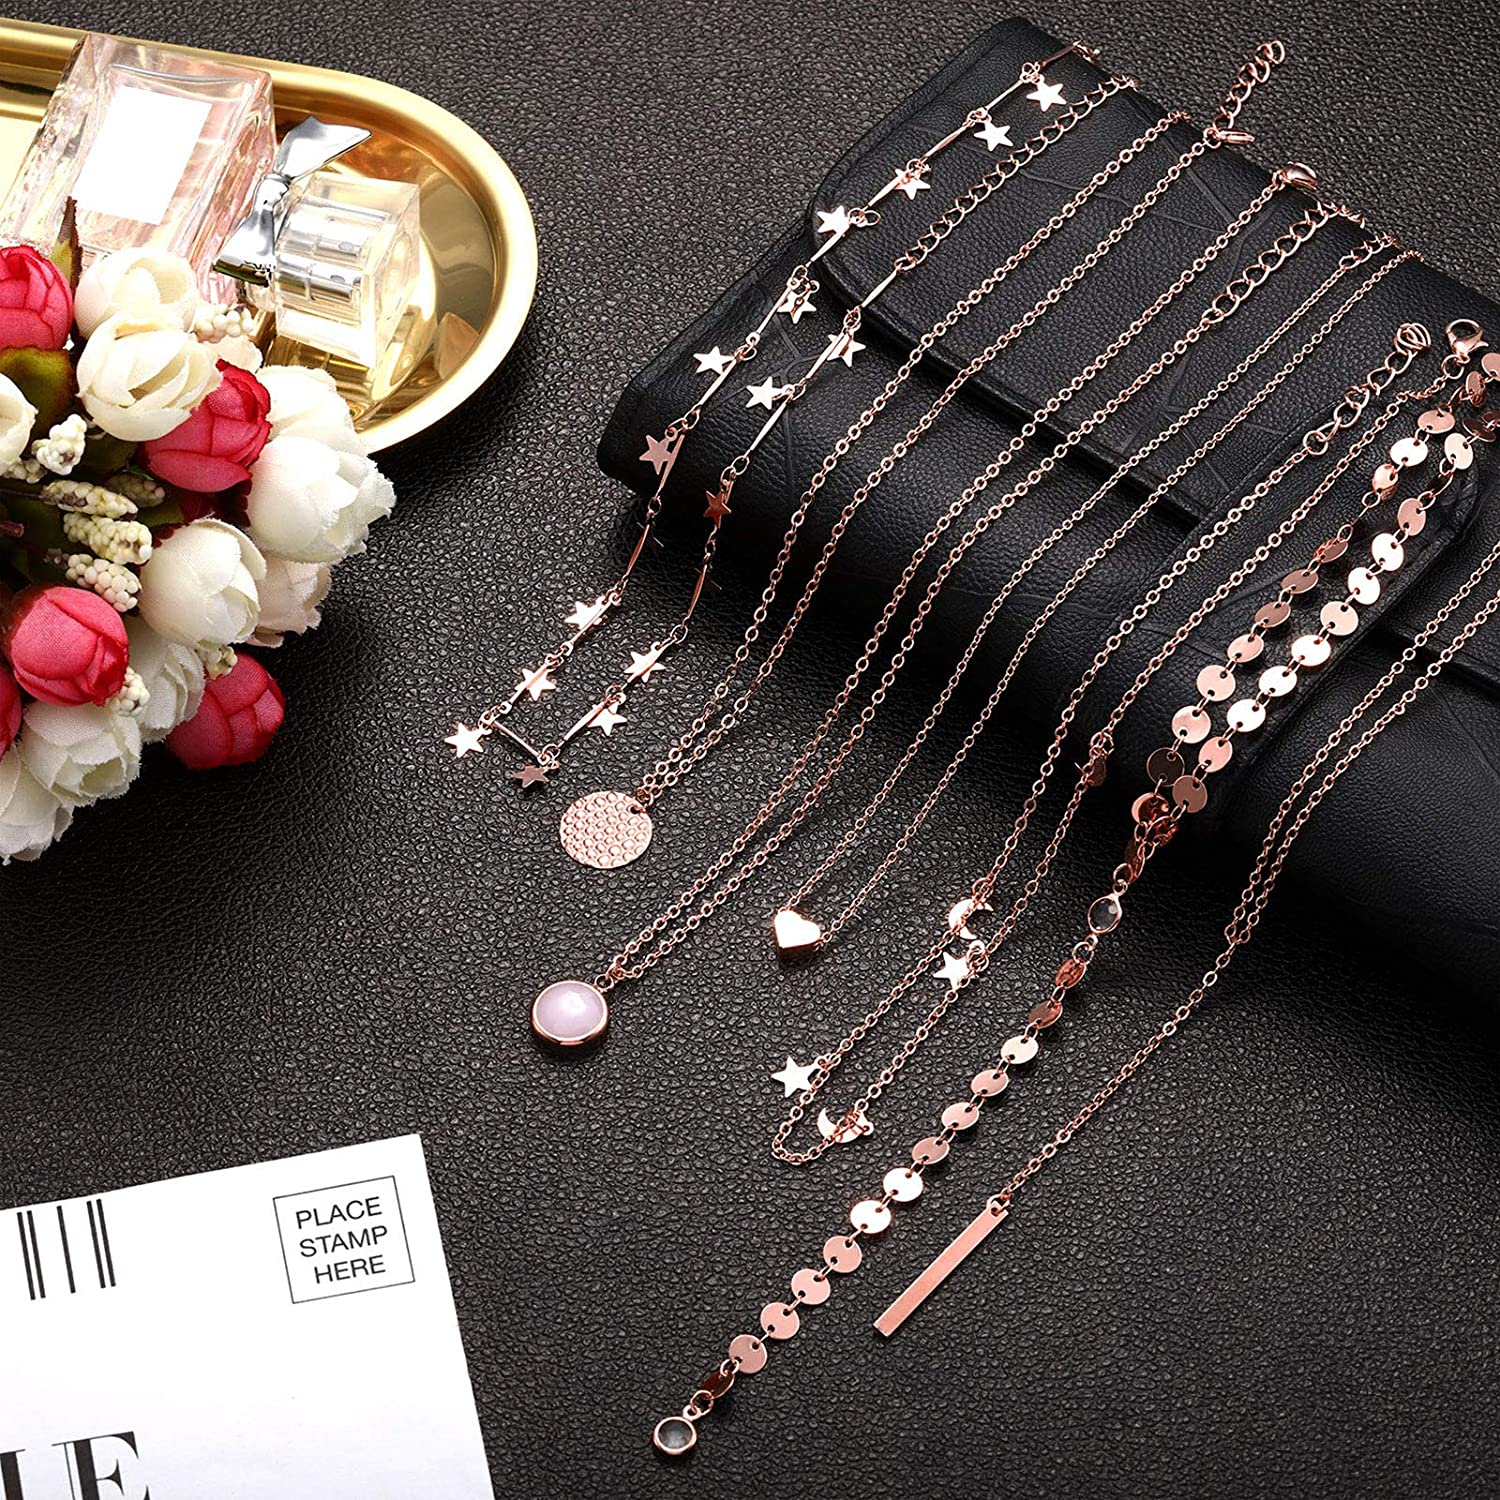 16 Pieces Layered Choker Necklace Adjustable Pendant Necklace Moon Sequins Choker Multilayer Chain Necklace Set for Women Girls